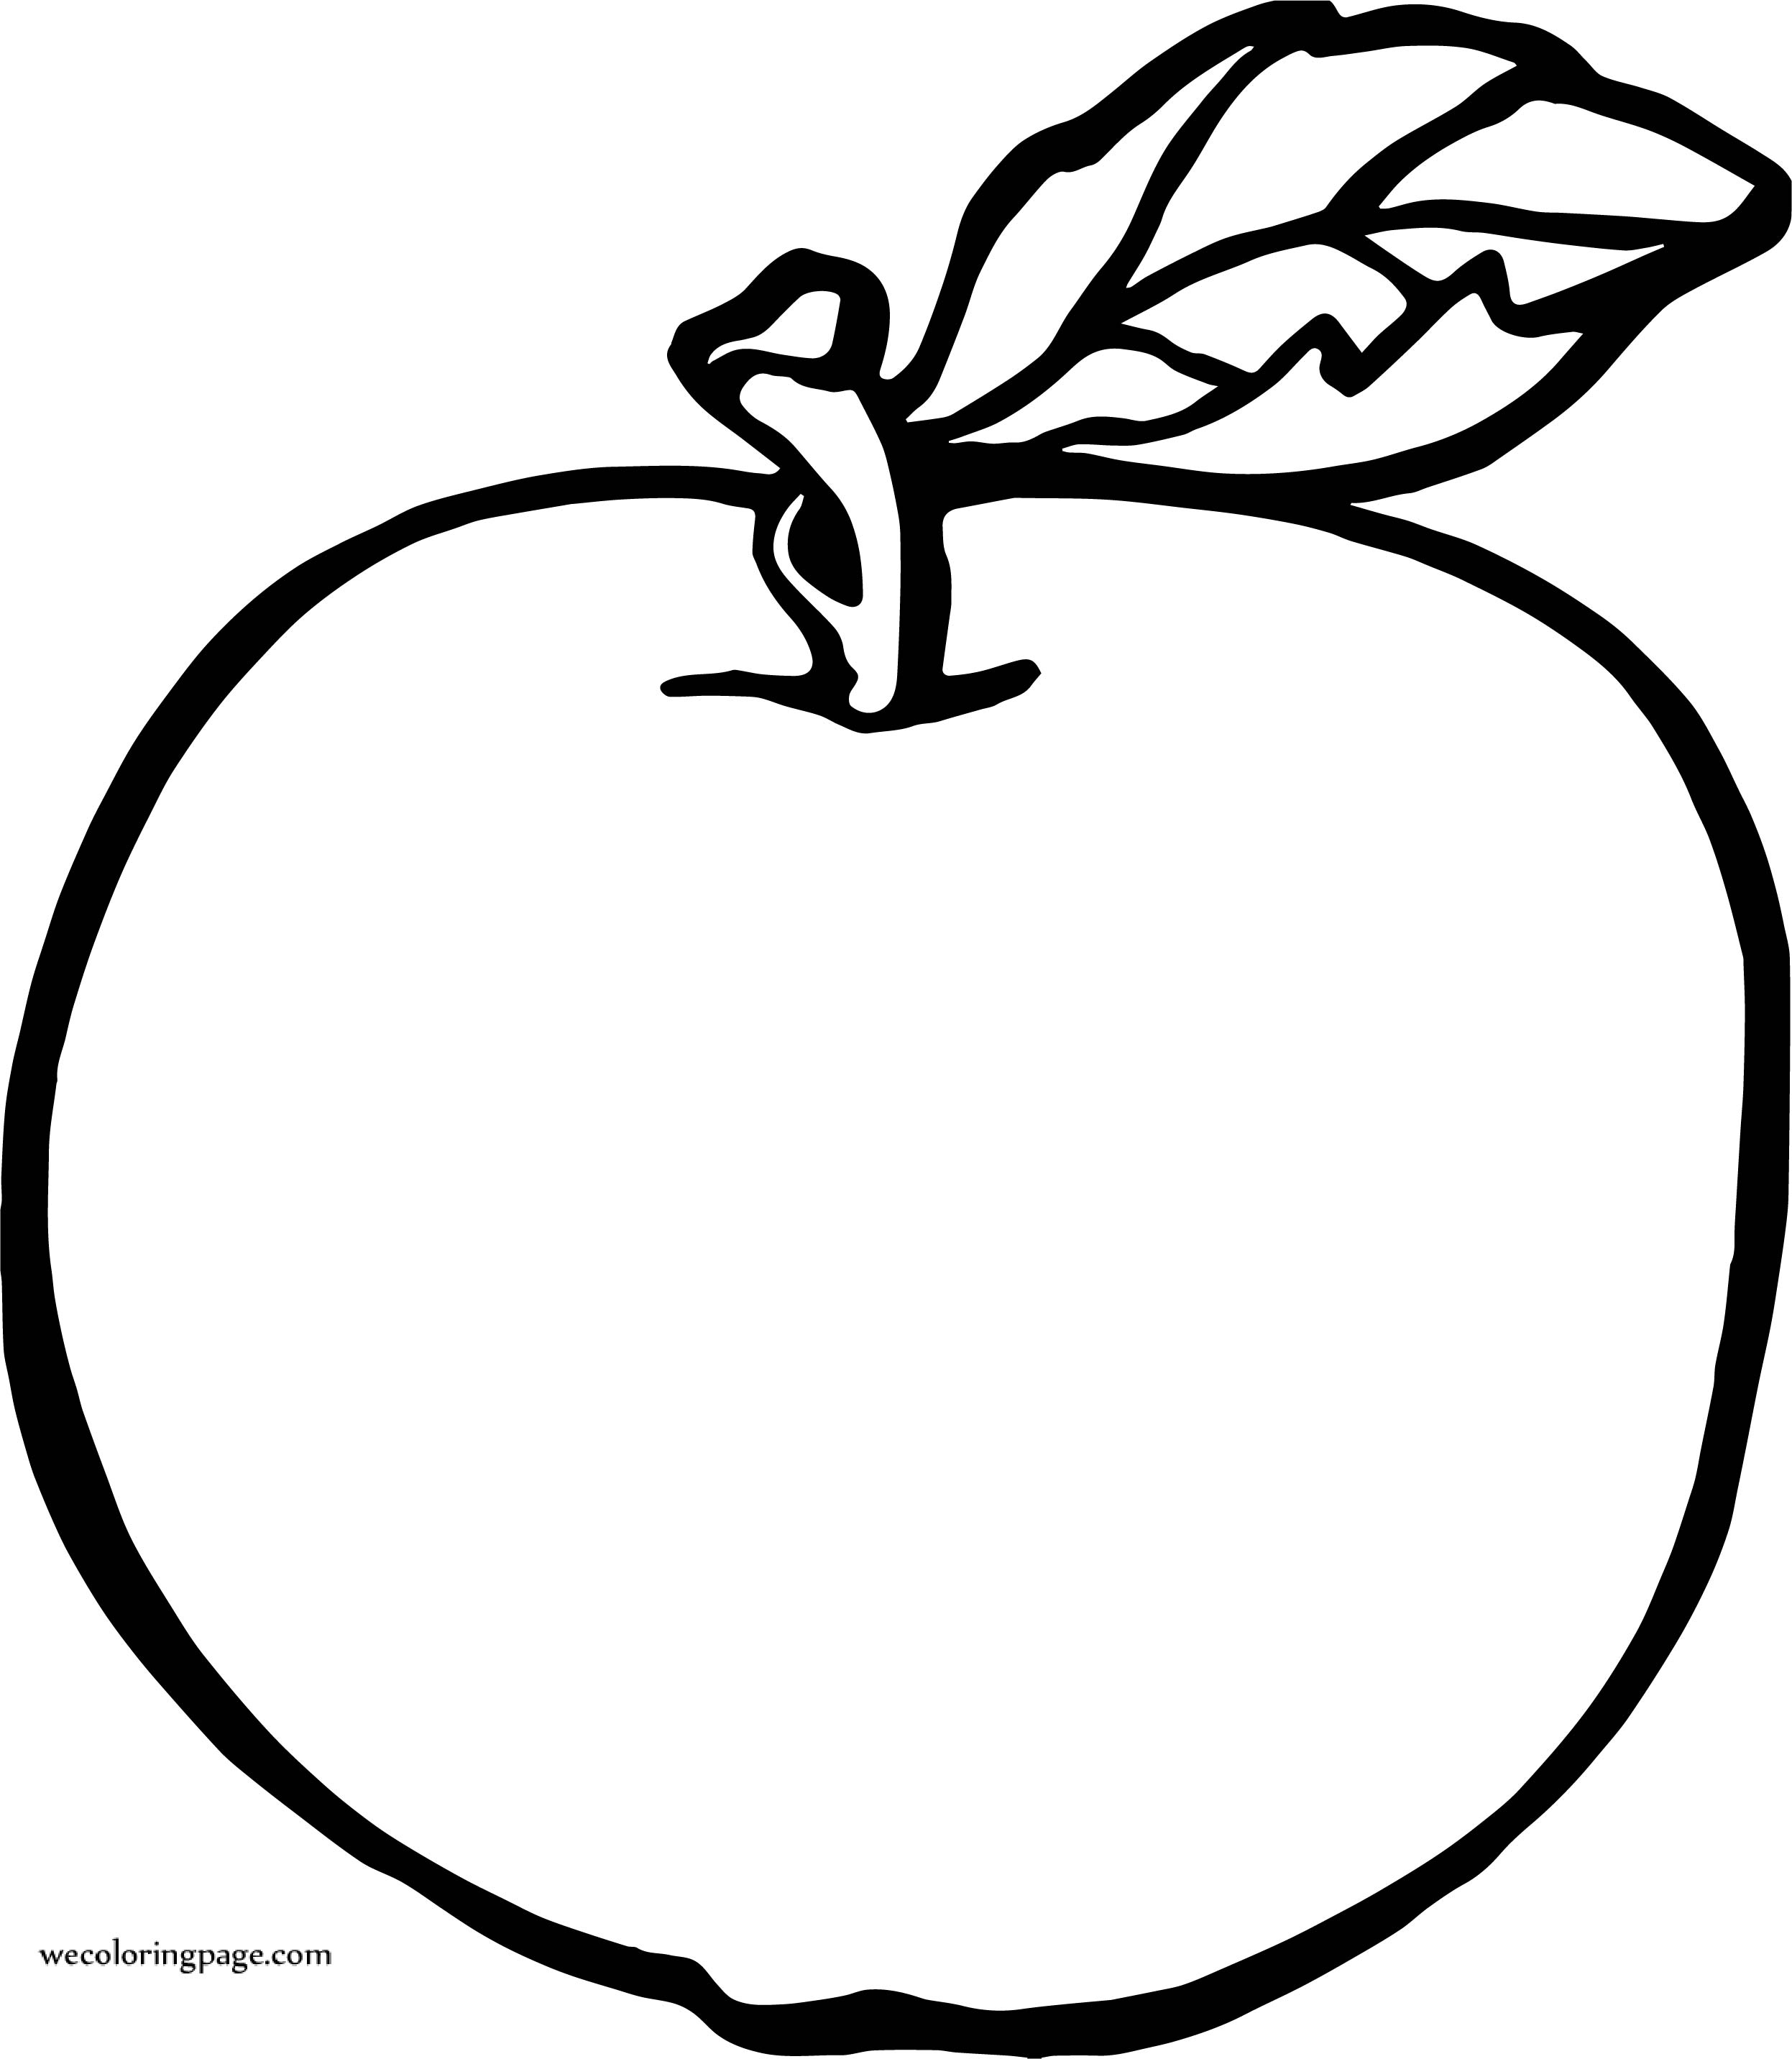 Big Apple Coloring Page Wecoloringpage